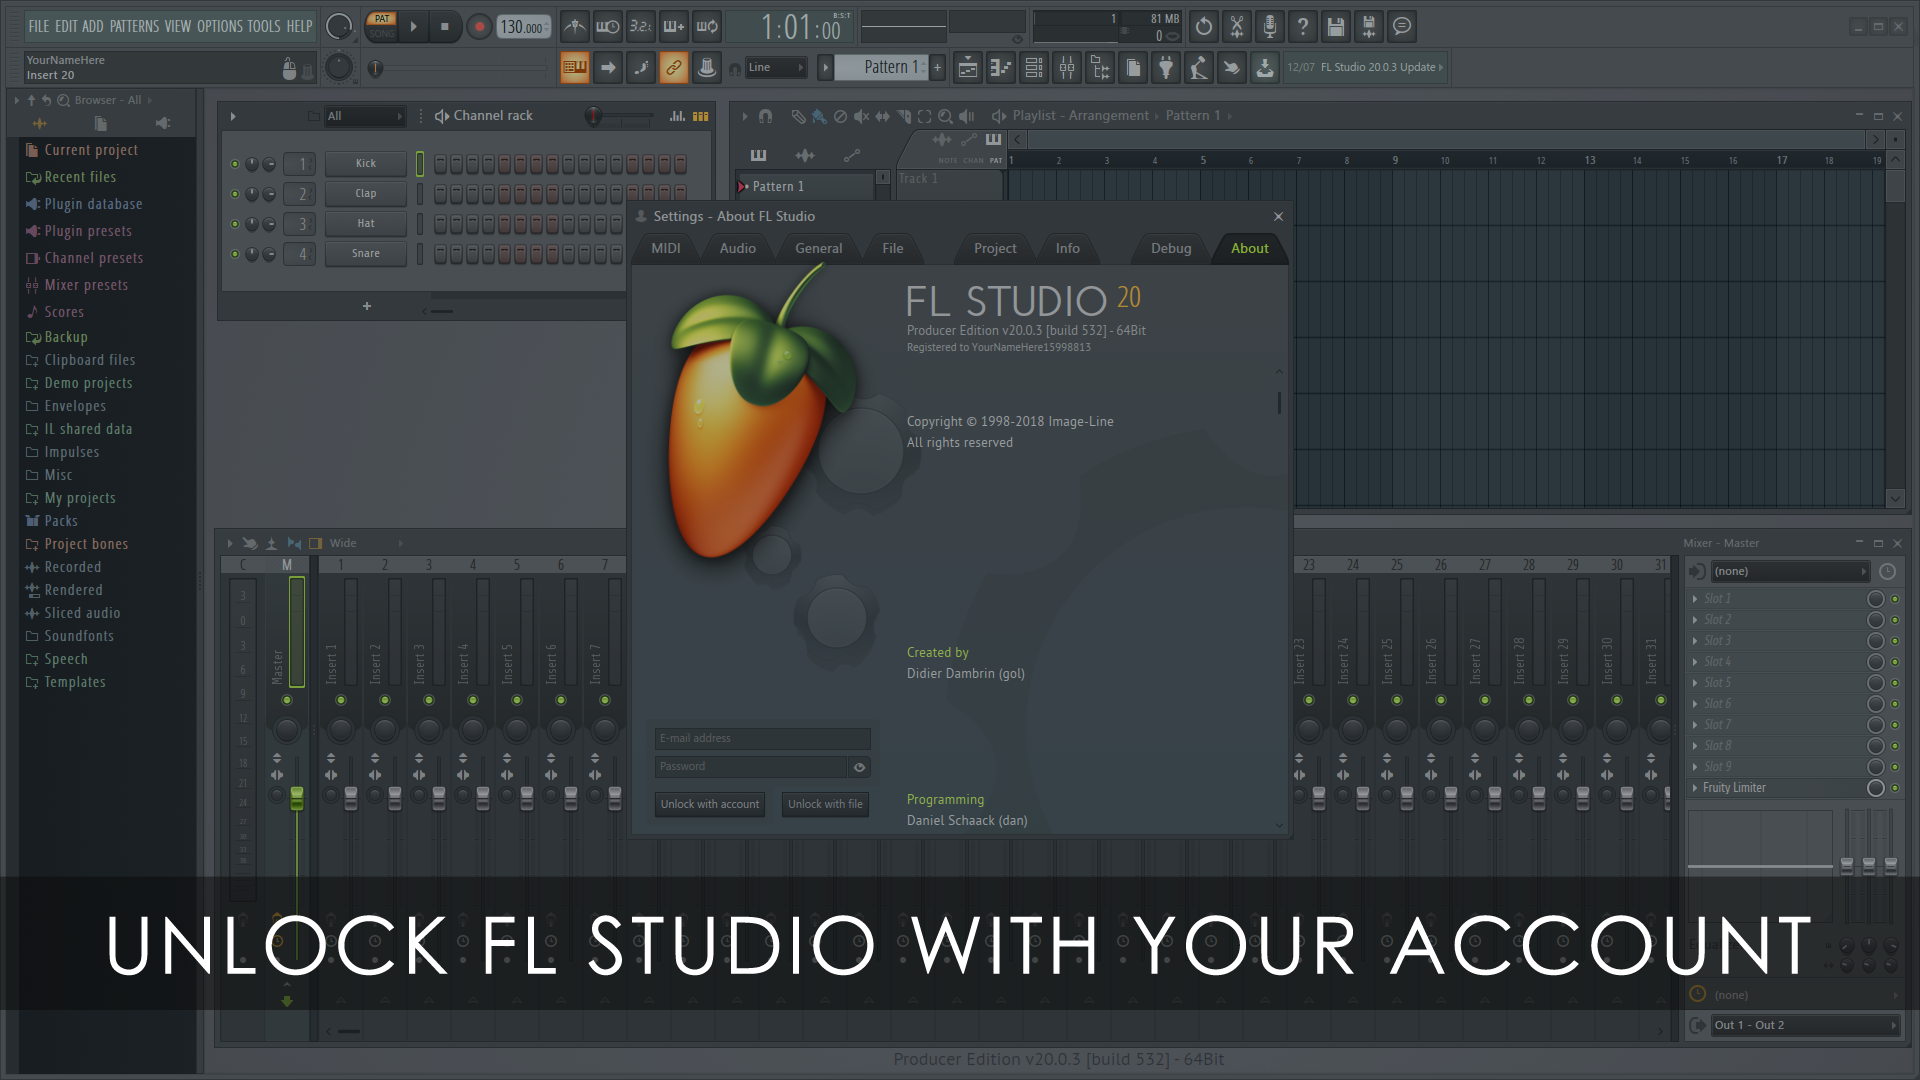 How to Unlock FL Studio